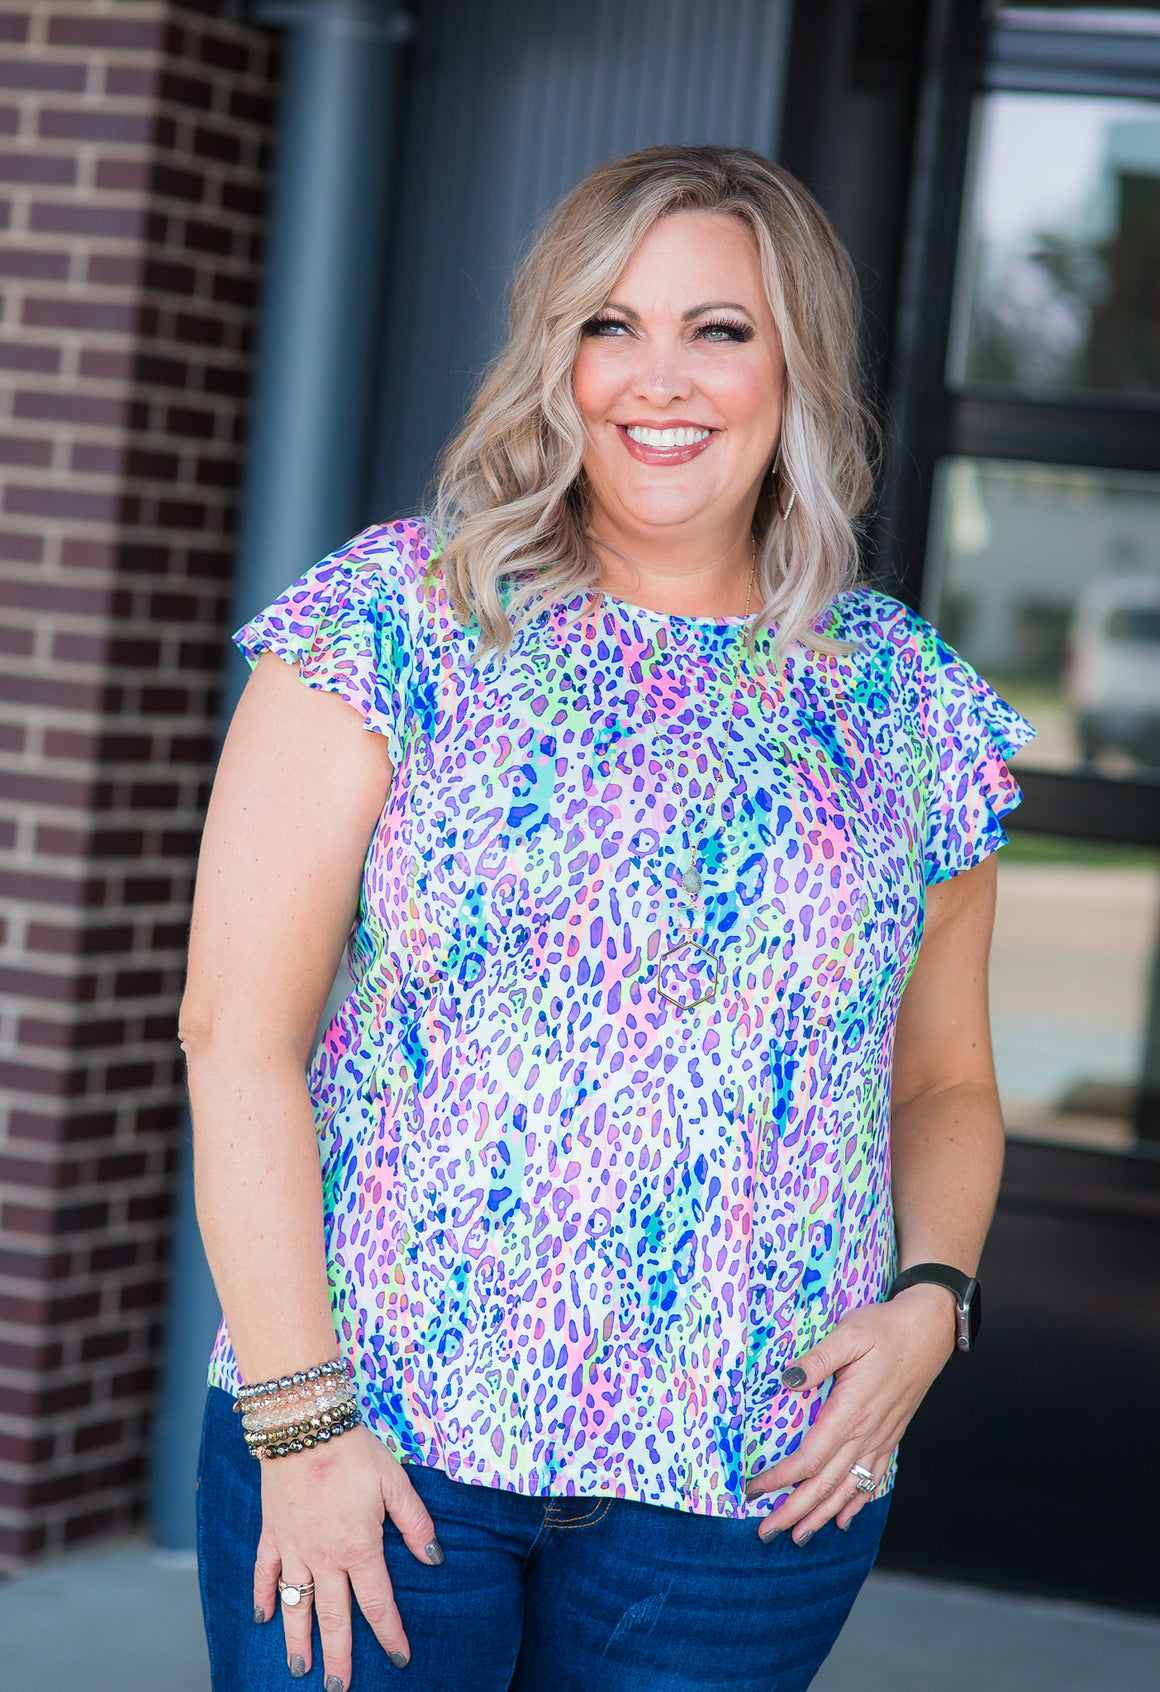 Ruffle Rainbow Cheetah Top